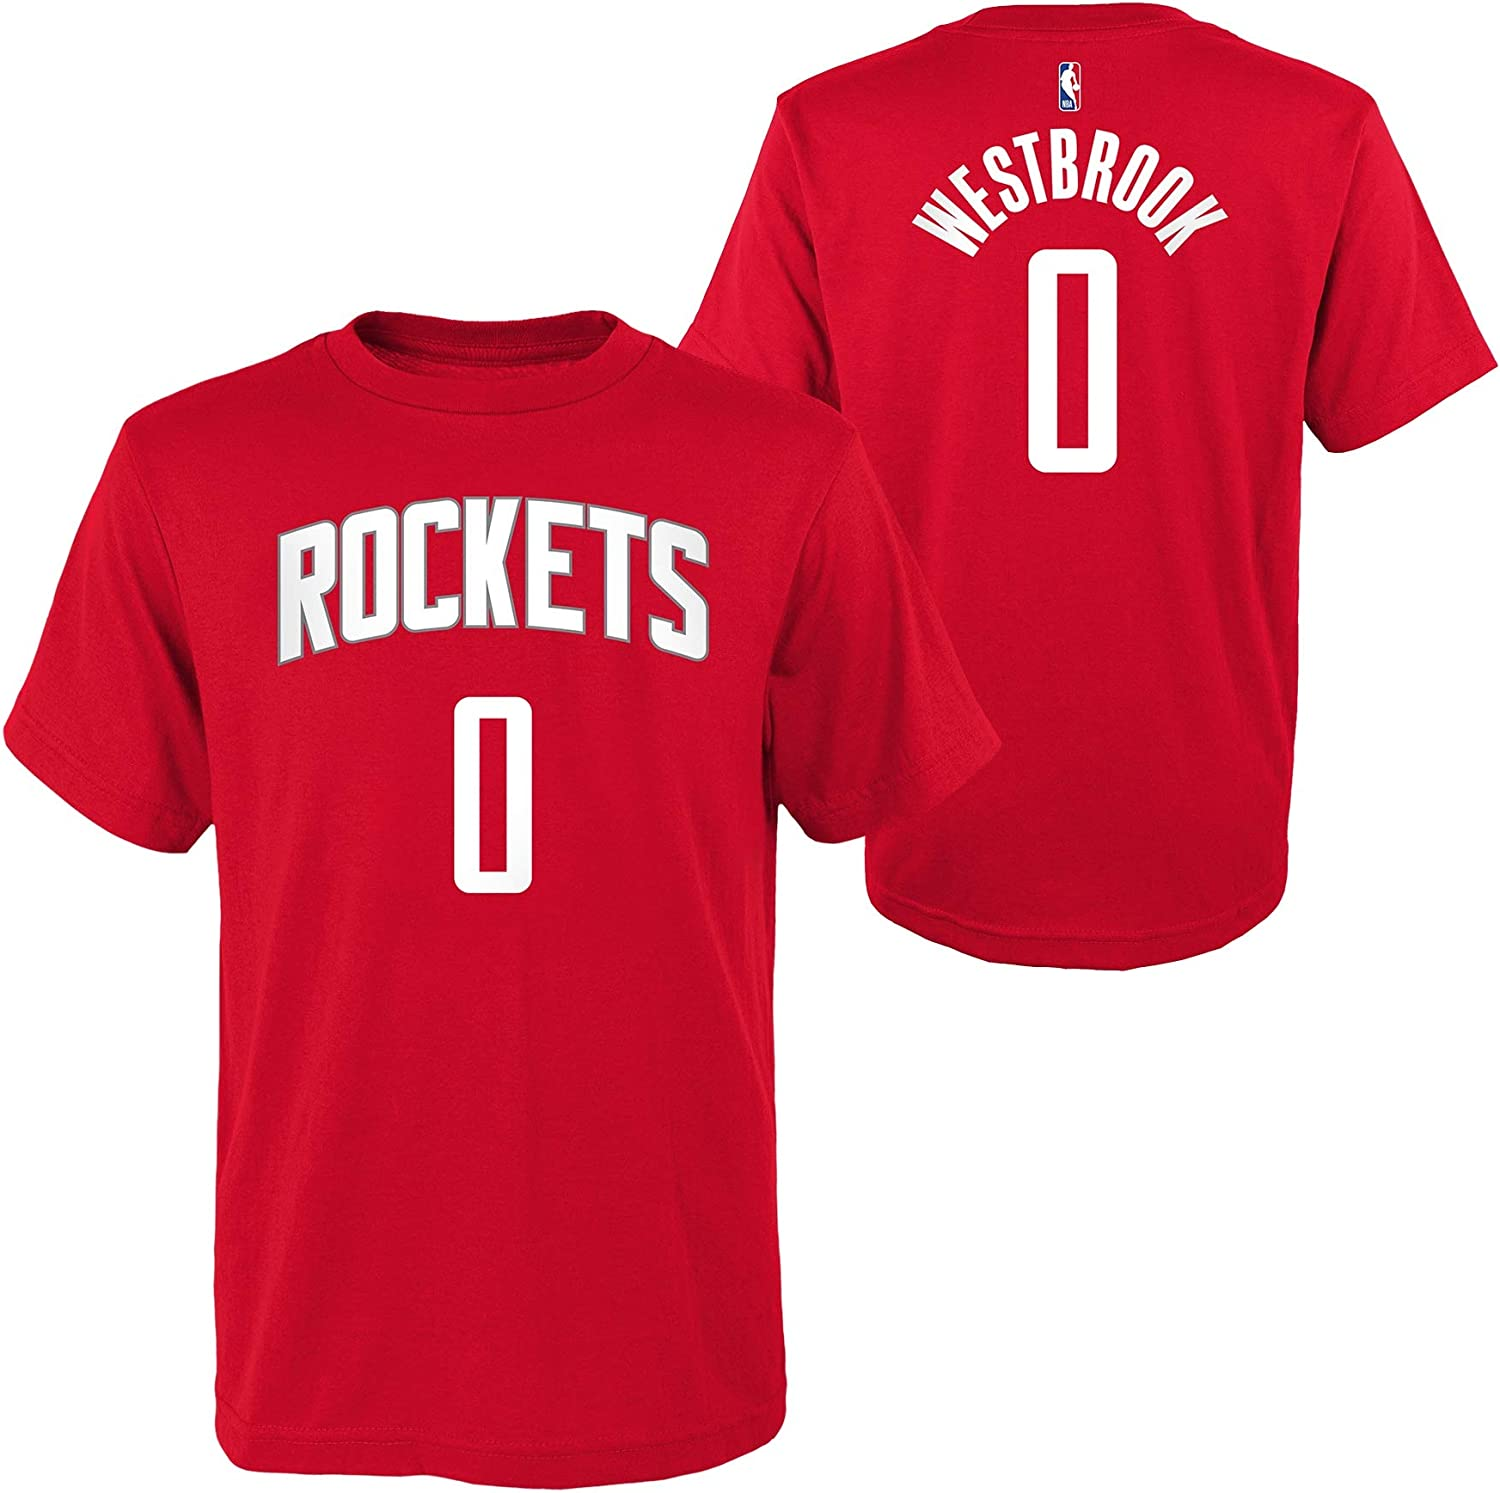 Outerstuff Russell Westbrook Houston Rockets #0 ユース 選手名と背番号 Tシャツ レッド  Medium 10/12